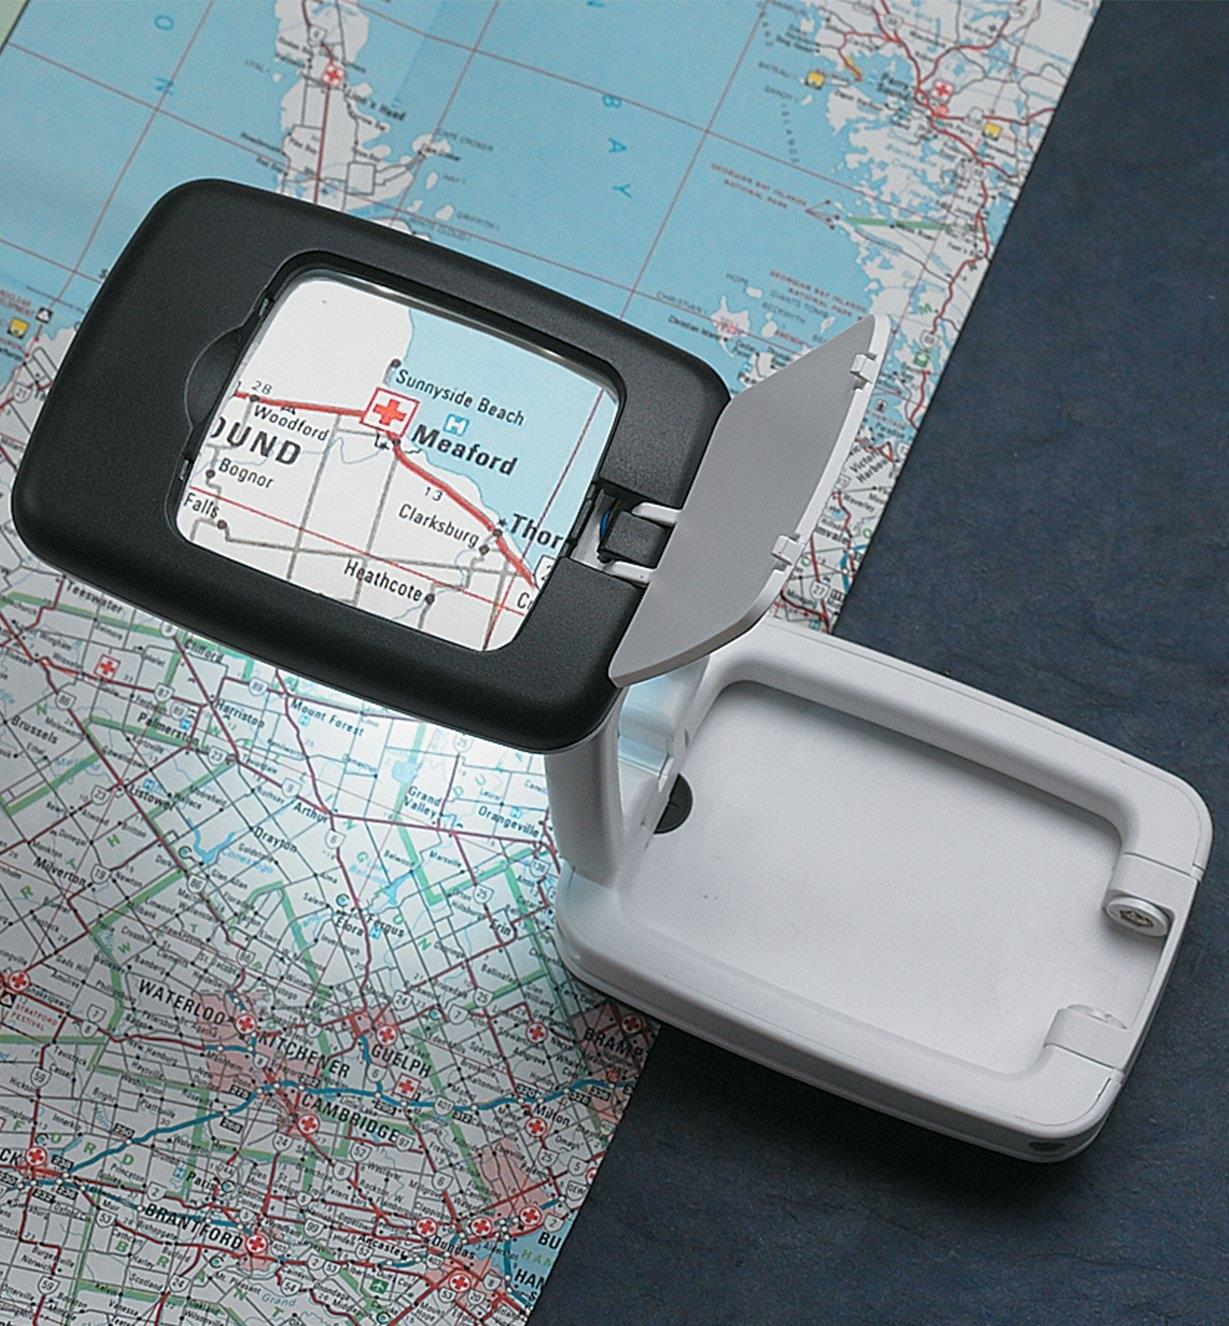 Stand-Up Folding LED Magnifier magnifying a map